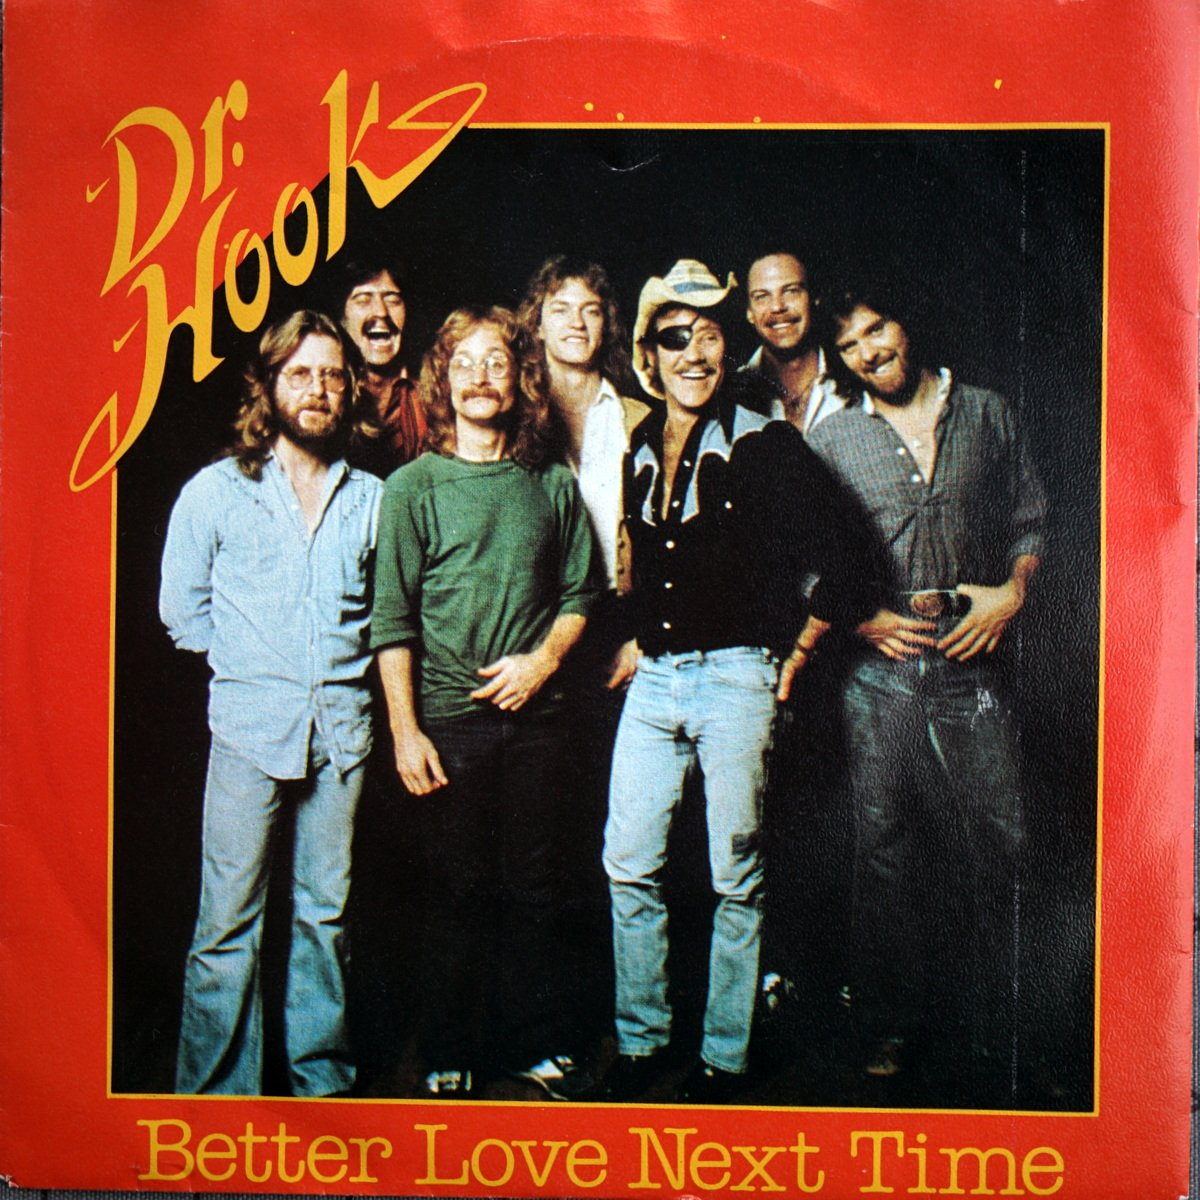 S SW A1 - 7C 006-86055 Red Cover - Better Love Next Time - 1979 - Scan